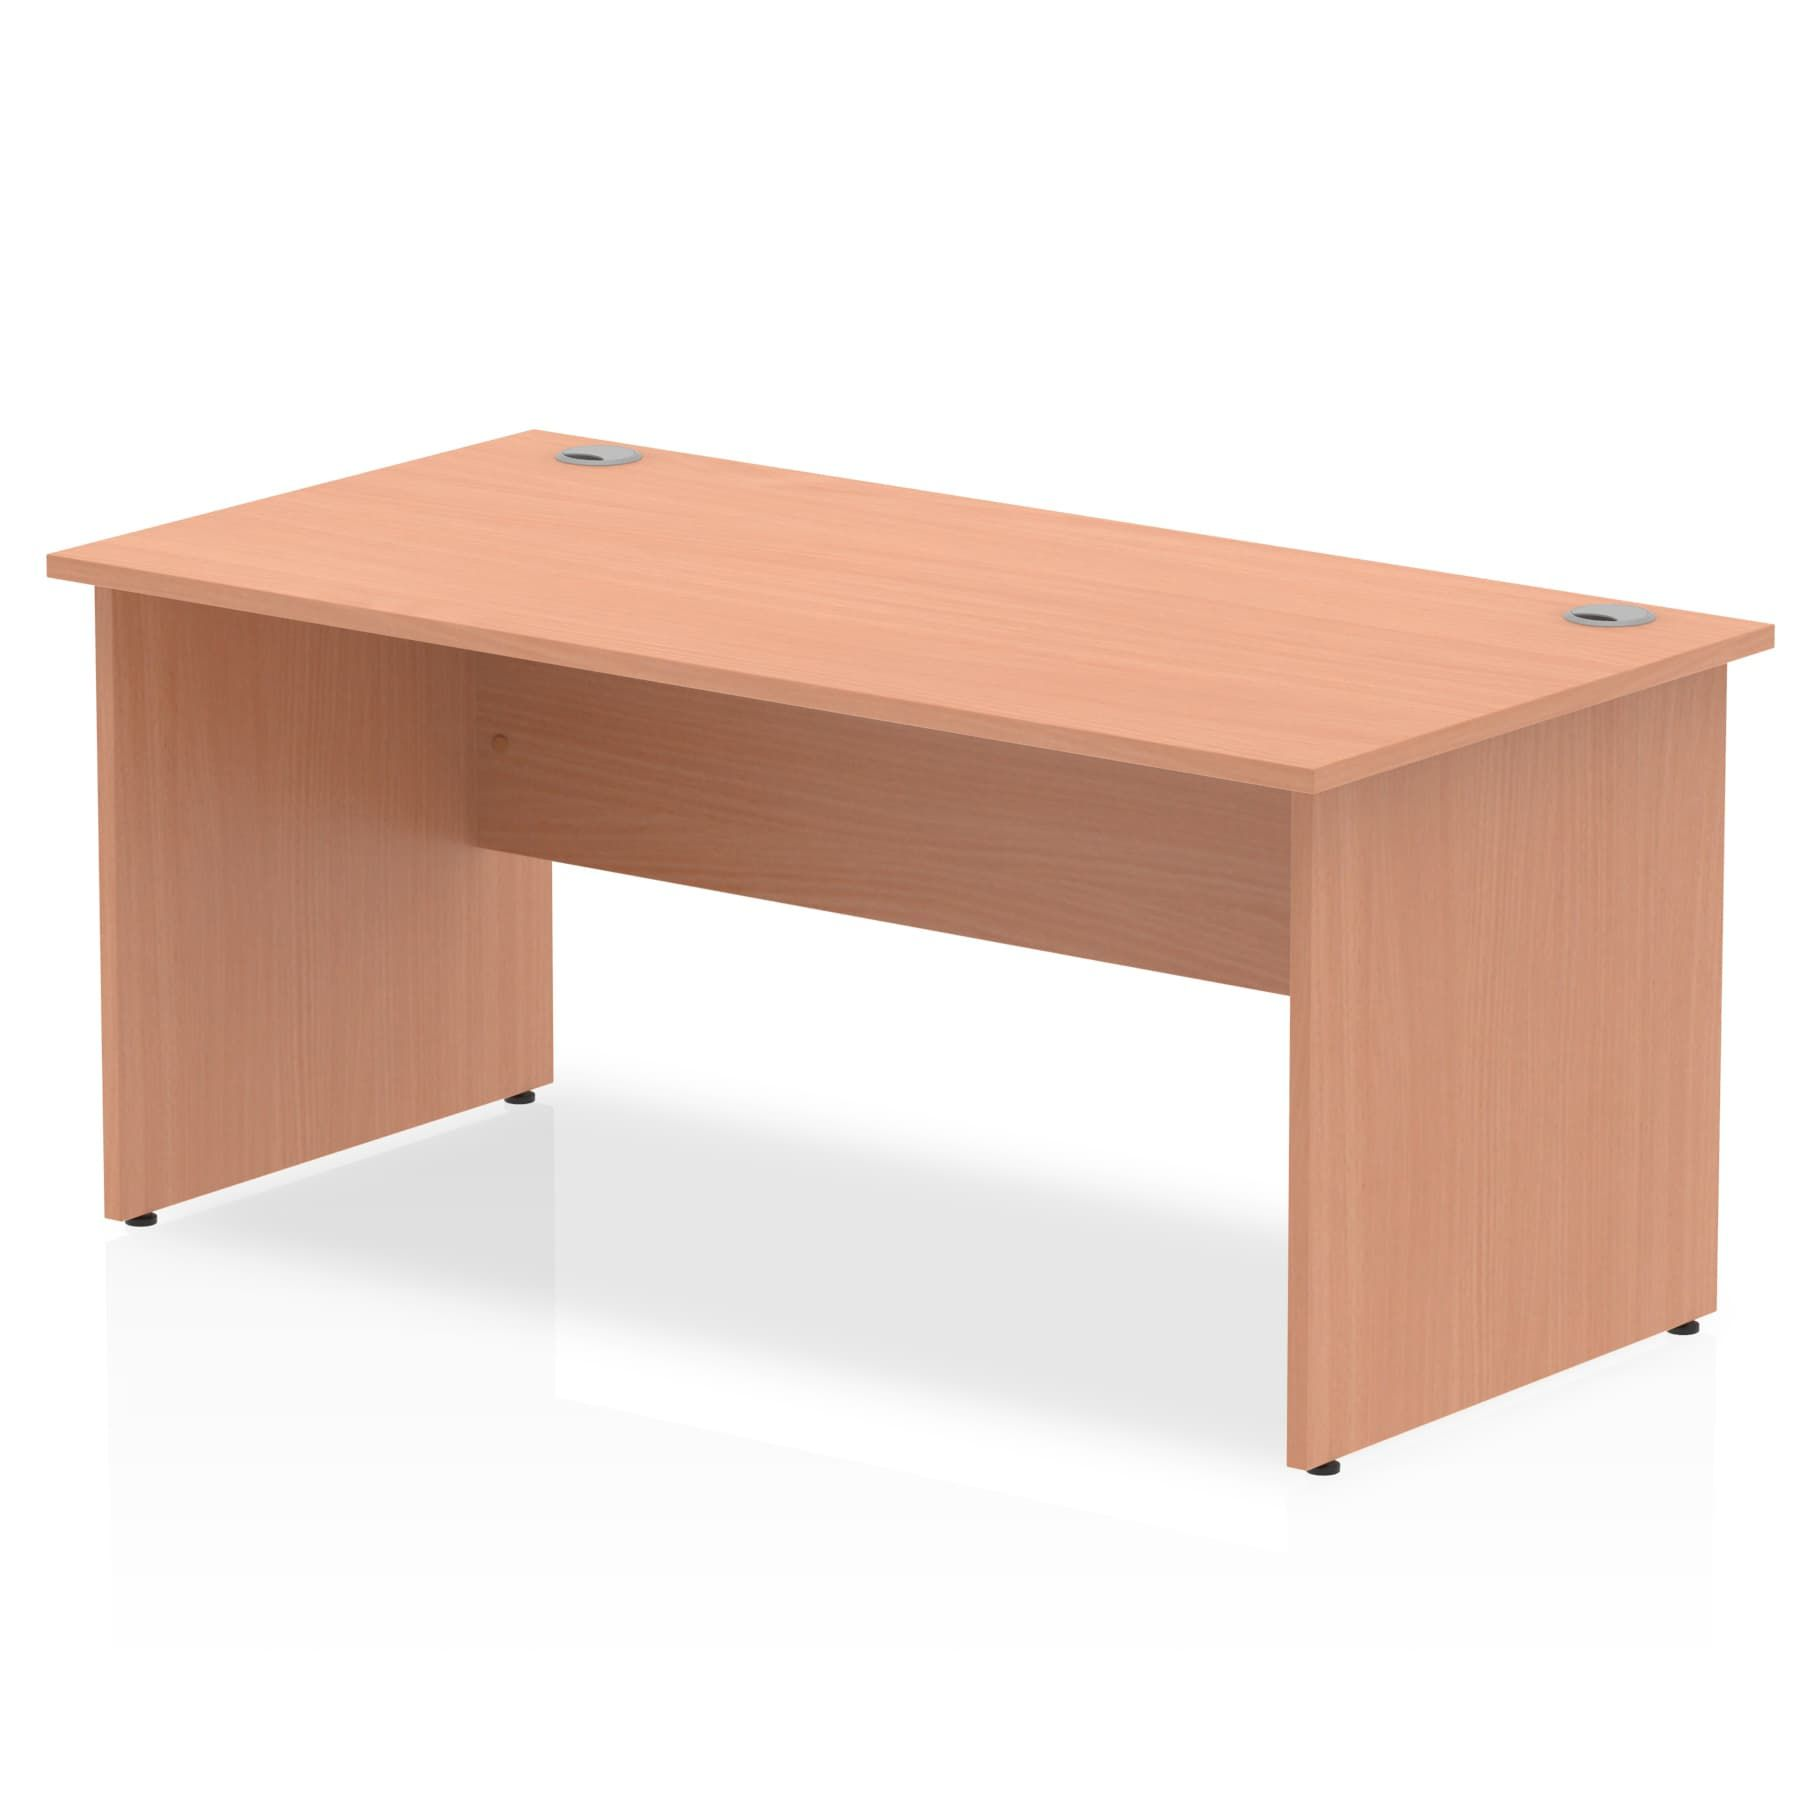 Impulse Panel End 1600 Rectangle Desk